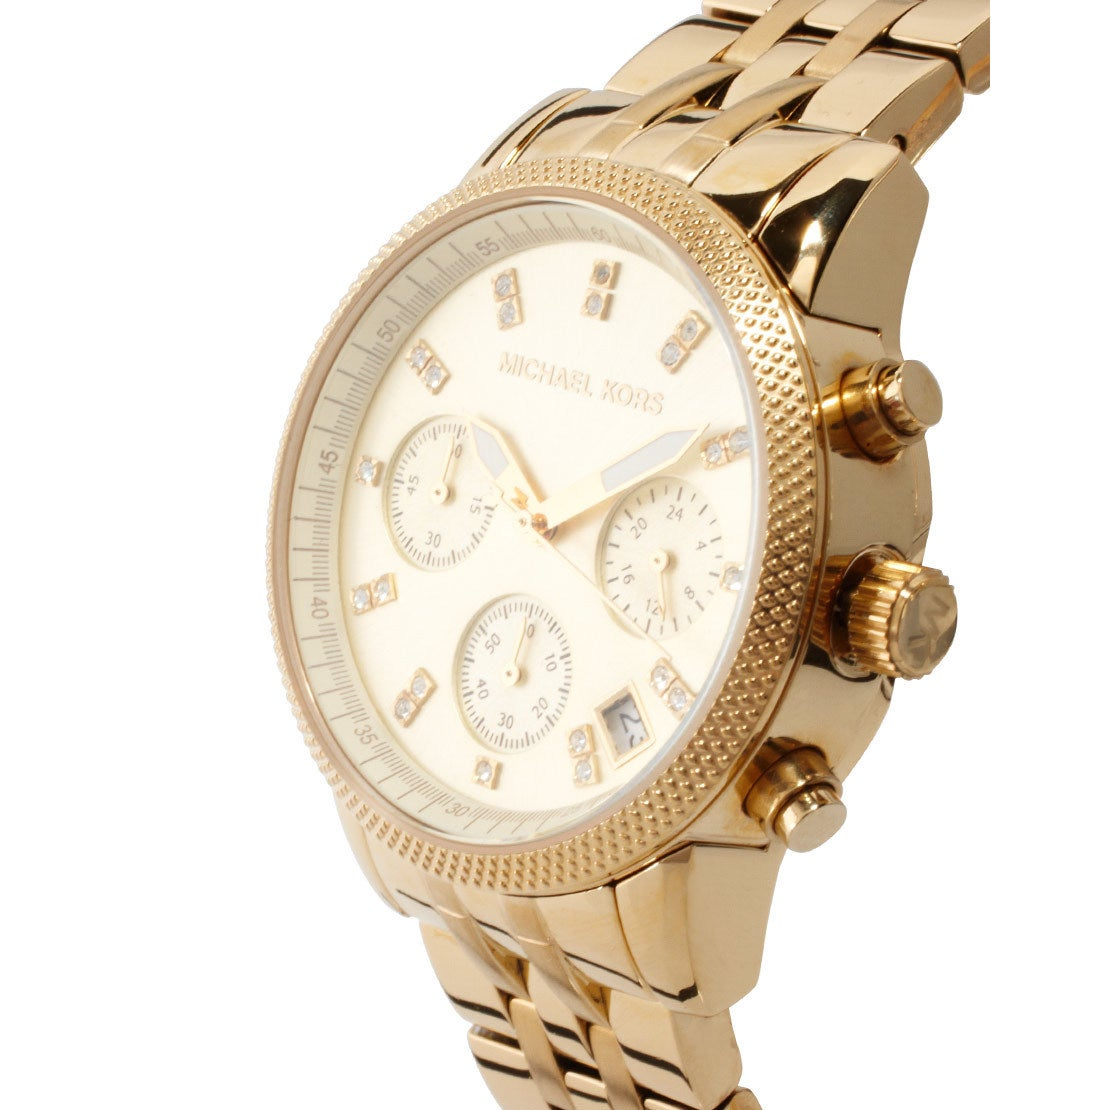 0ea72afdc832 Shop Michael Kors Women s MK5676 Ritz Stainless Steel Watch - Free Shipping  Today - Overstock - 7424086